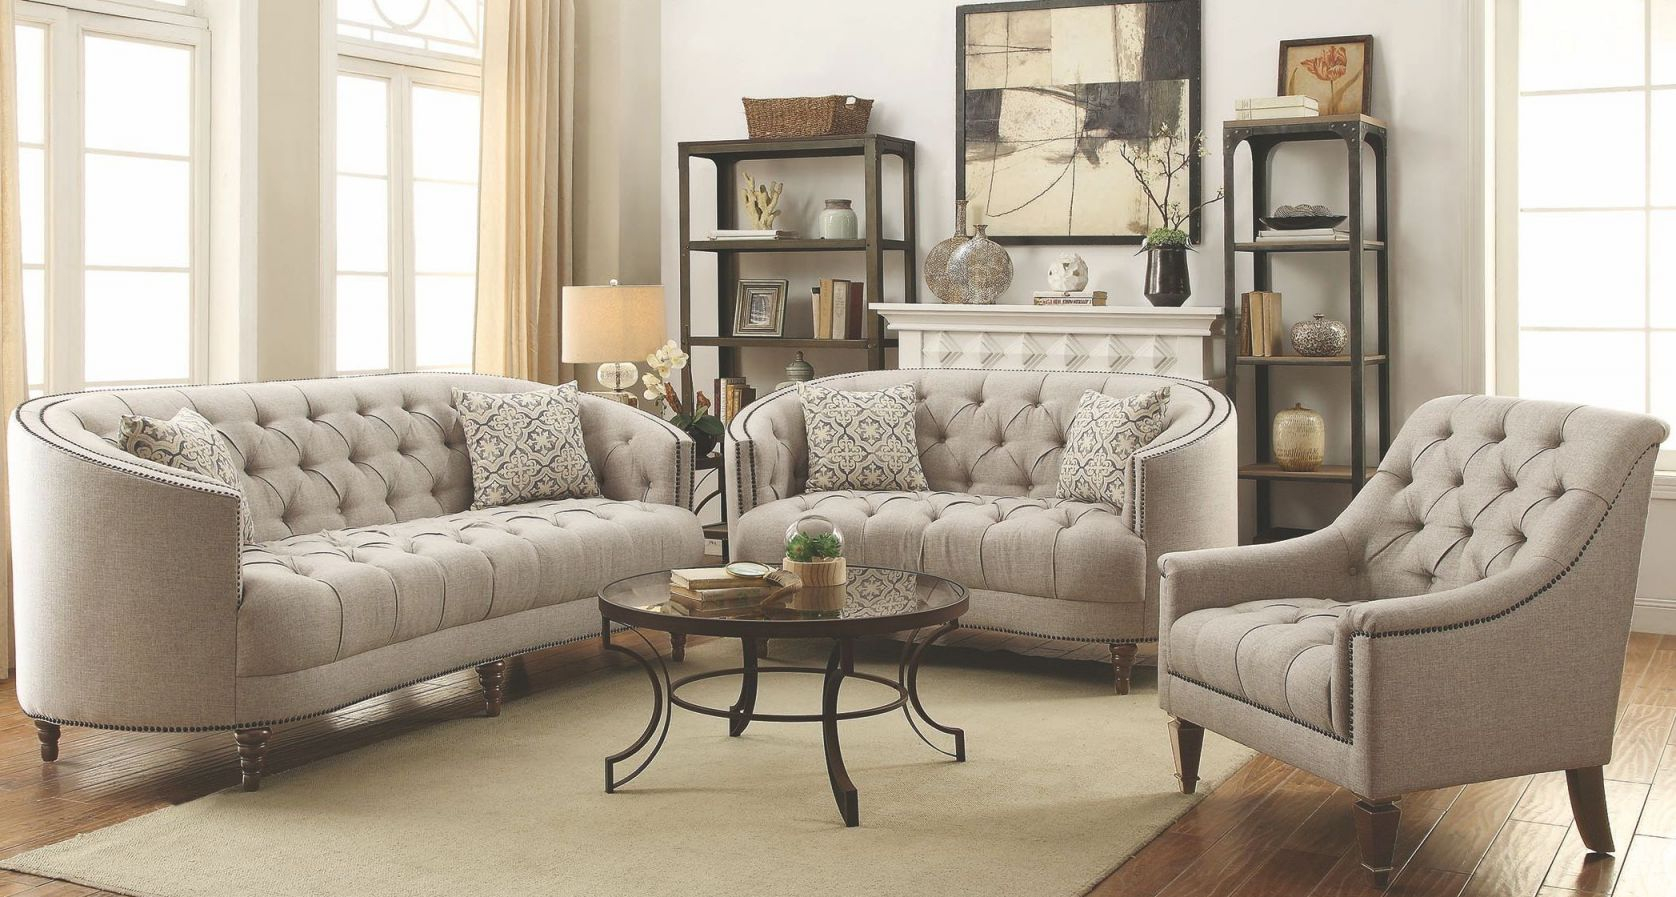 Avonlea Stone Grey Living Room Set with regard to Living Room Sets